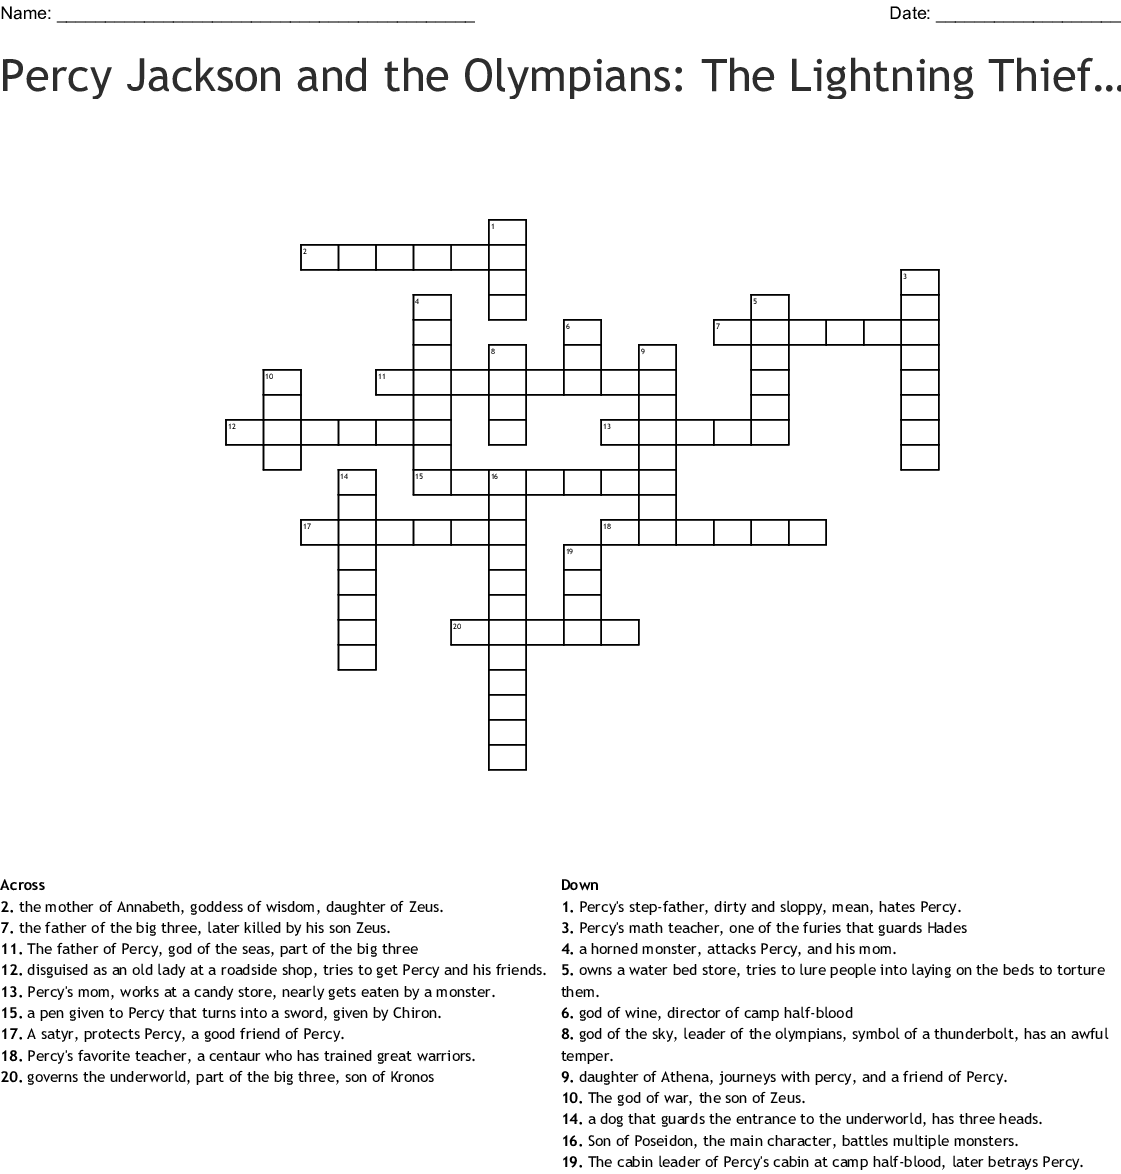 The Lightning Thief Crossword